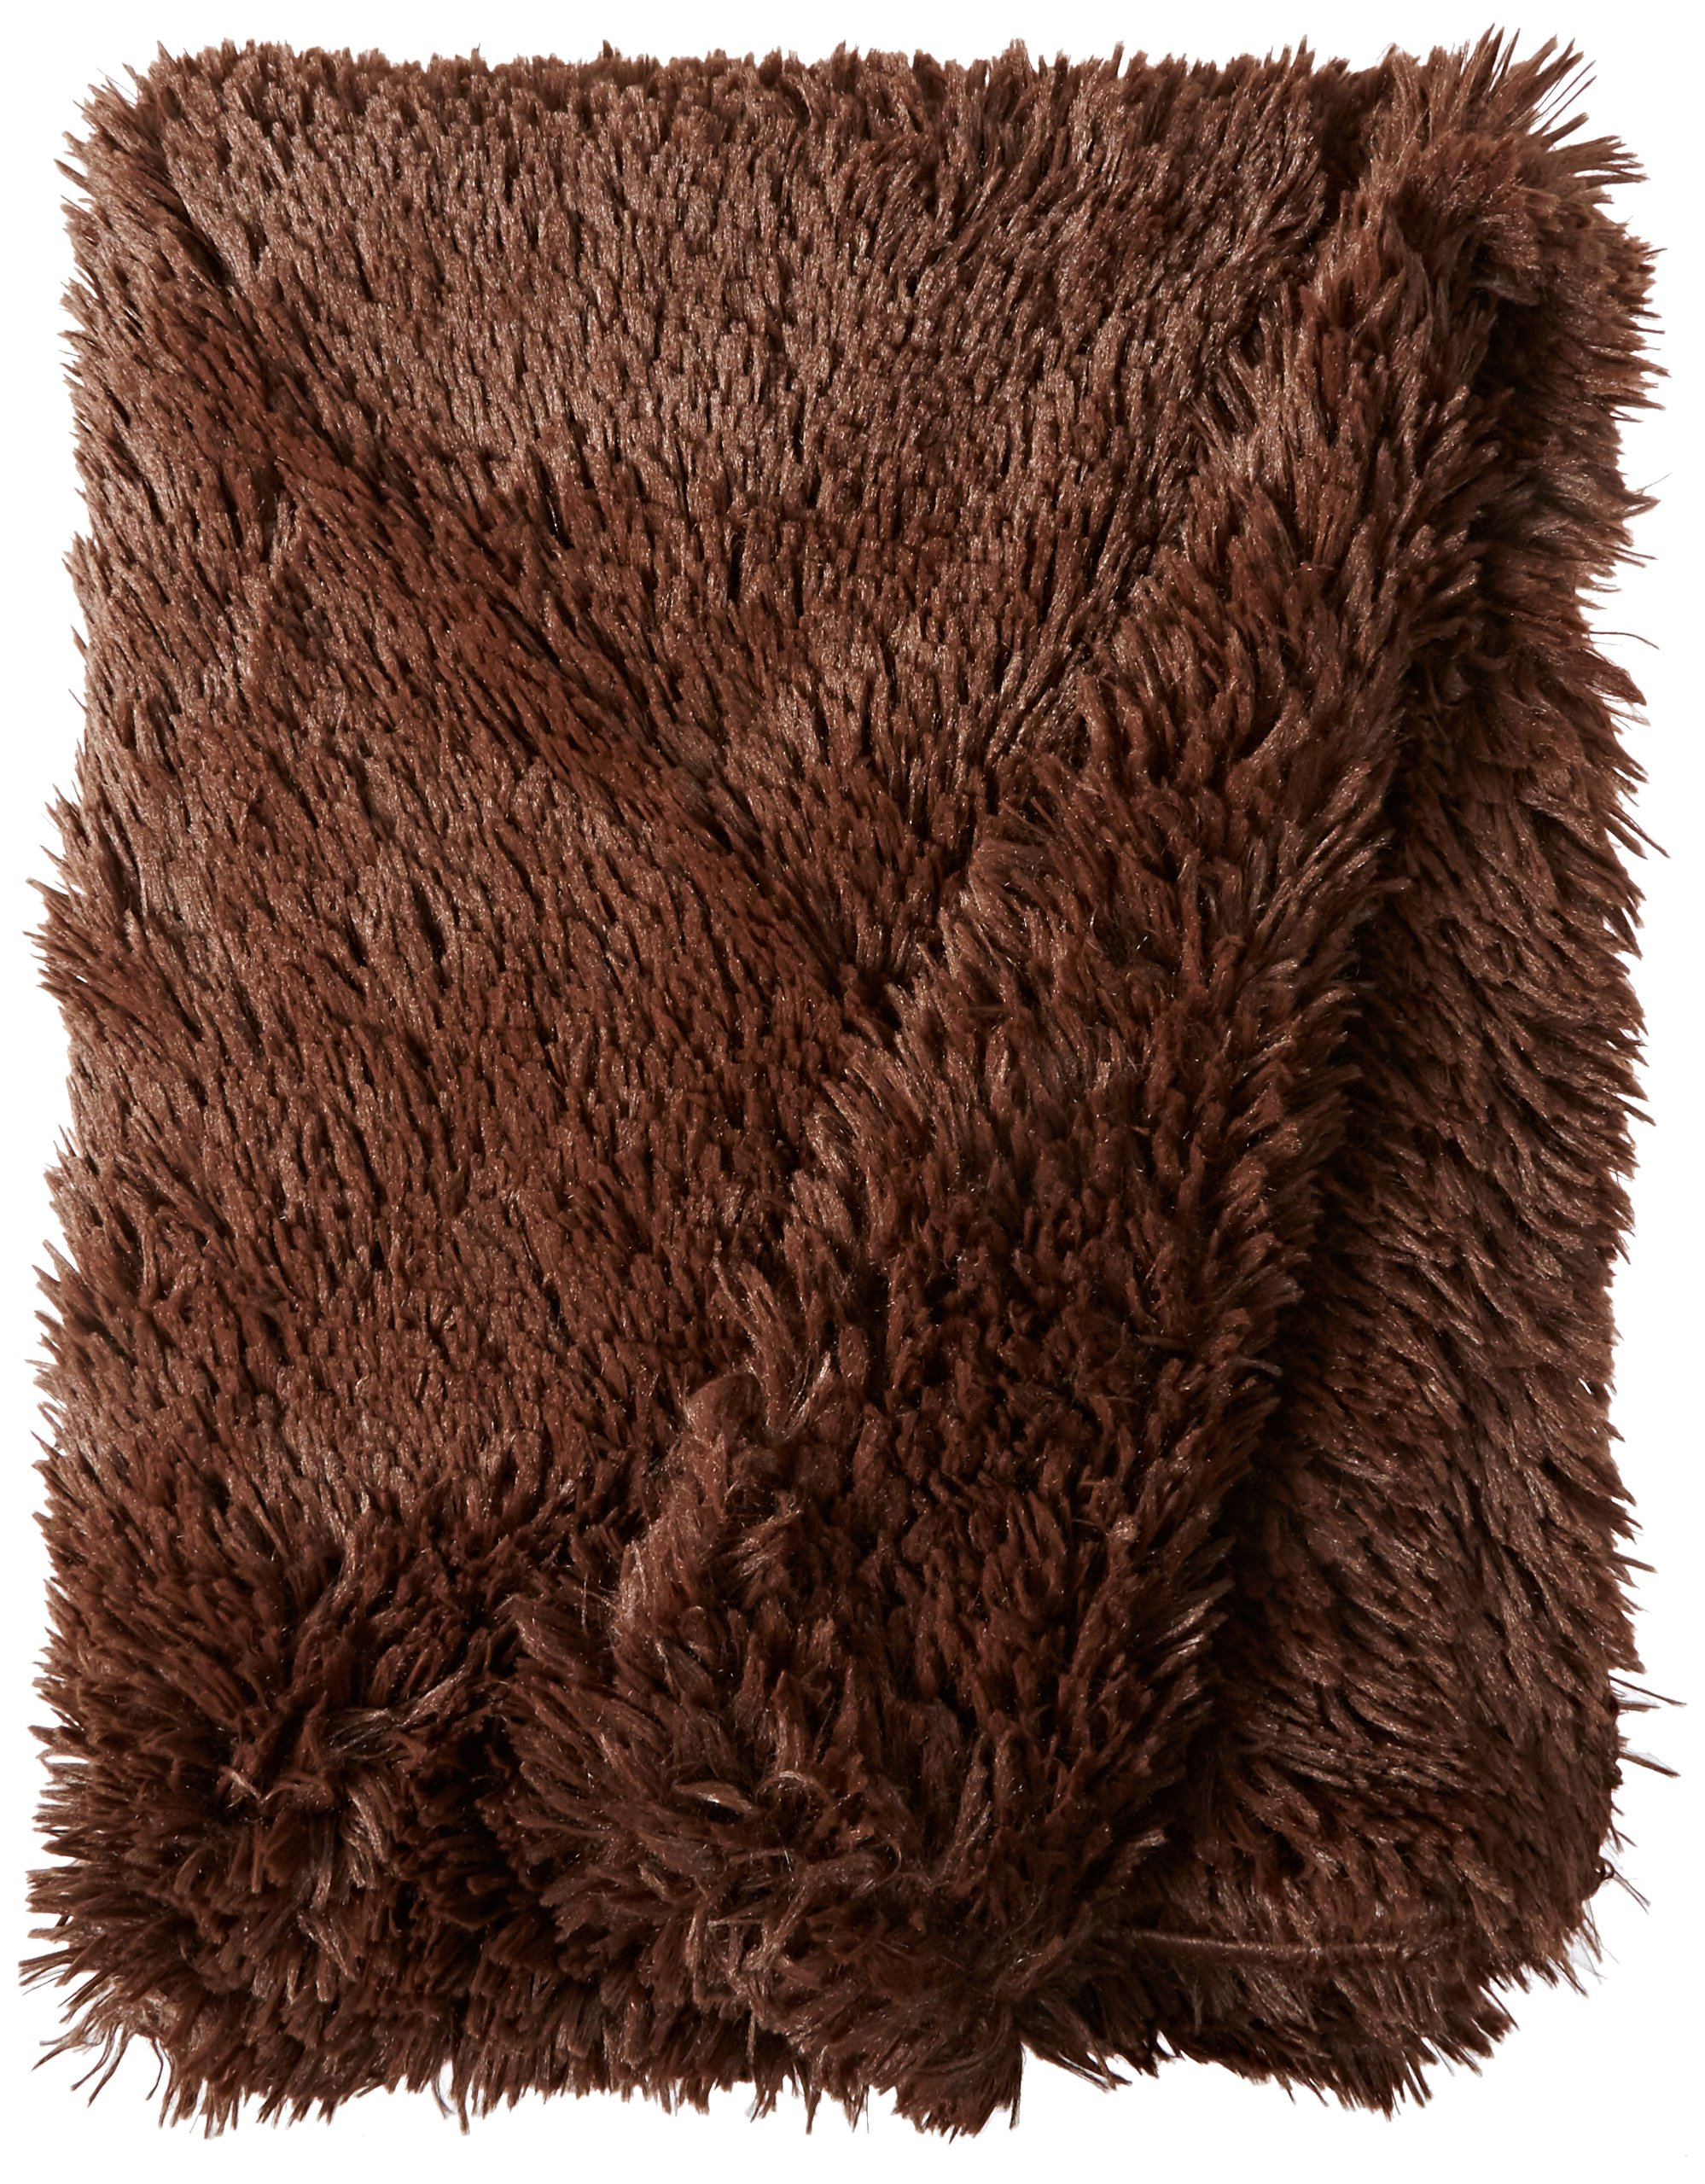 BESSIE AND BARNIE Pet Blanket, Medium, Grizzly Bear/Grizzly Bear without Ruffle